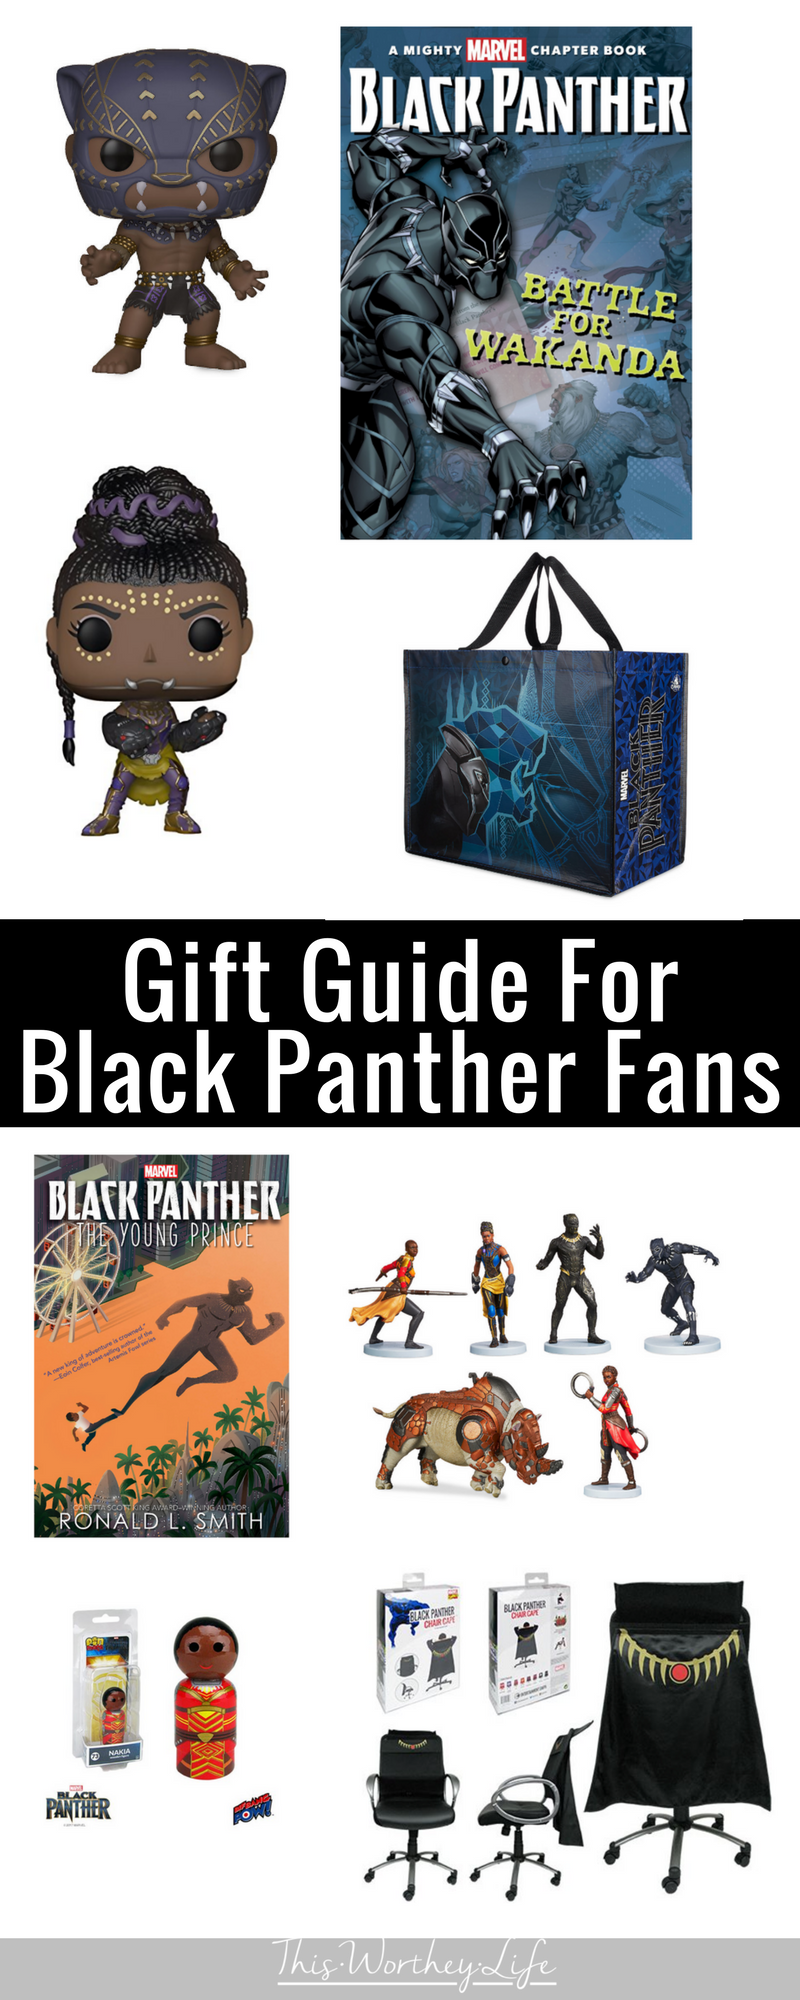 Learn about the Black Super Action Figures and Black Panther movie merchandise that's currently out for you to buy. These are great gift ideas for the Marvel geek in your life and Black Panther toys for the kids!